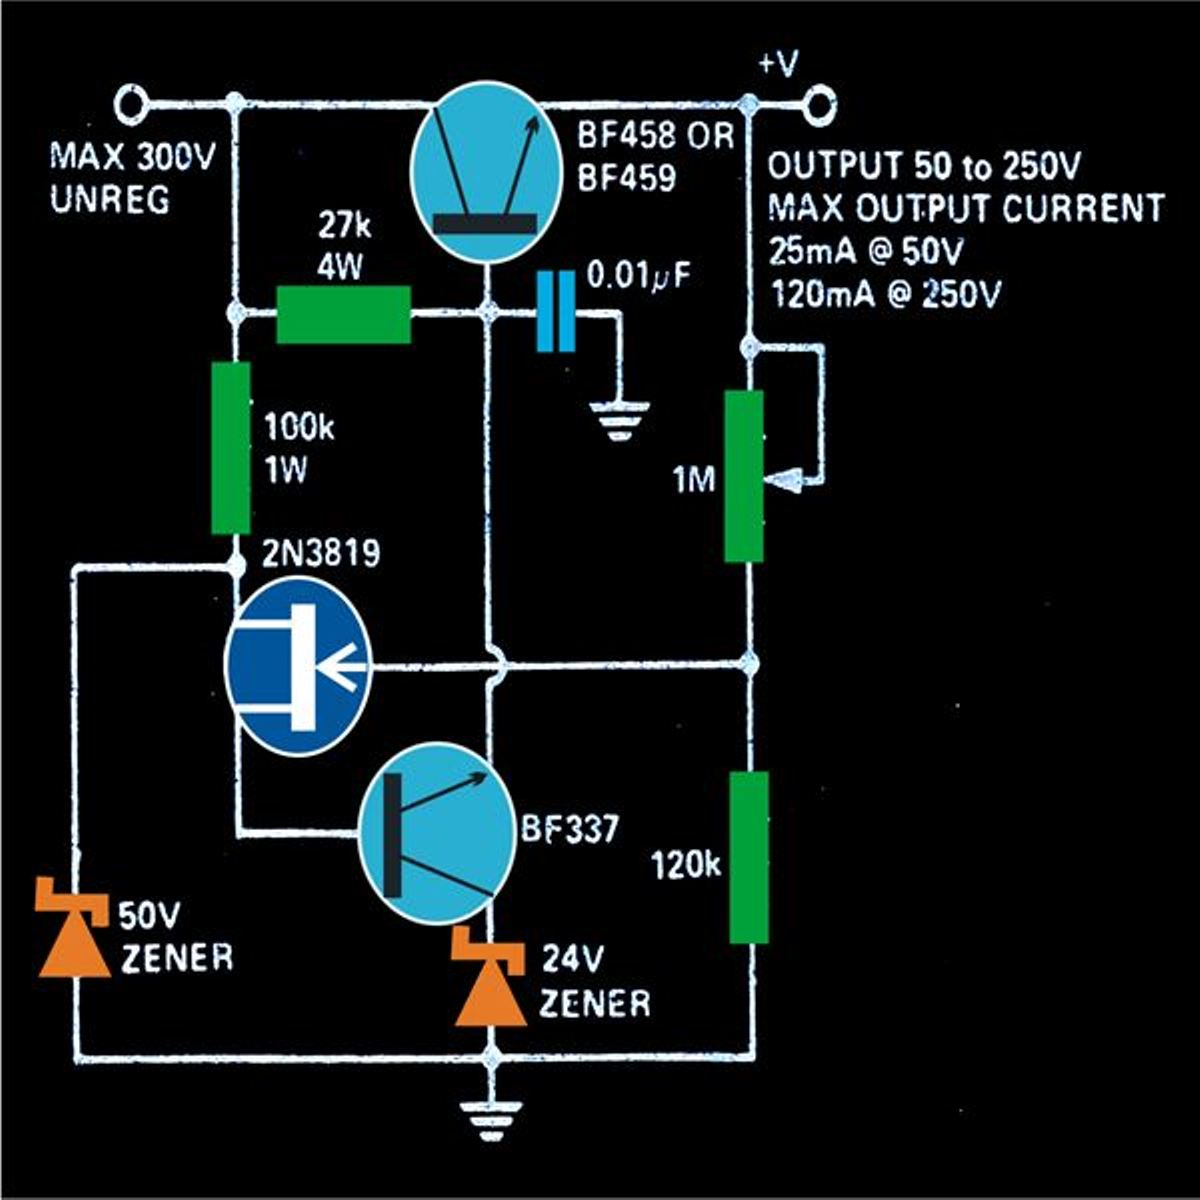 Solar Power Battery Charger 24 Volt Wiring Diagram Trusted Tv Distribution System Moreover Winnebago Diagrams Fara How To Build A Panel 4 6 Batteries 12